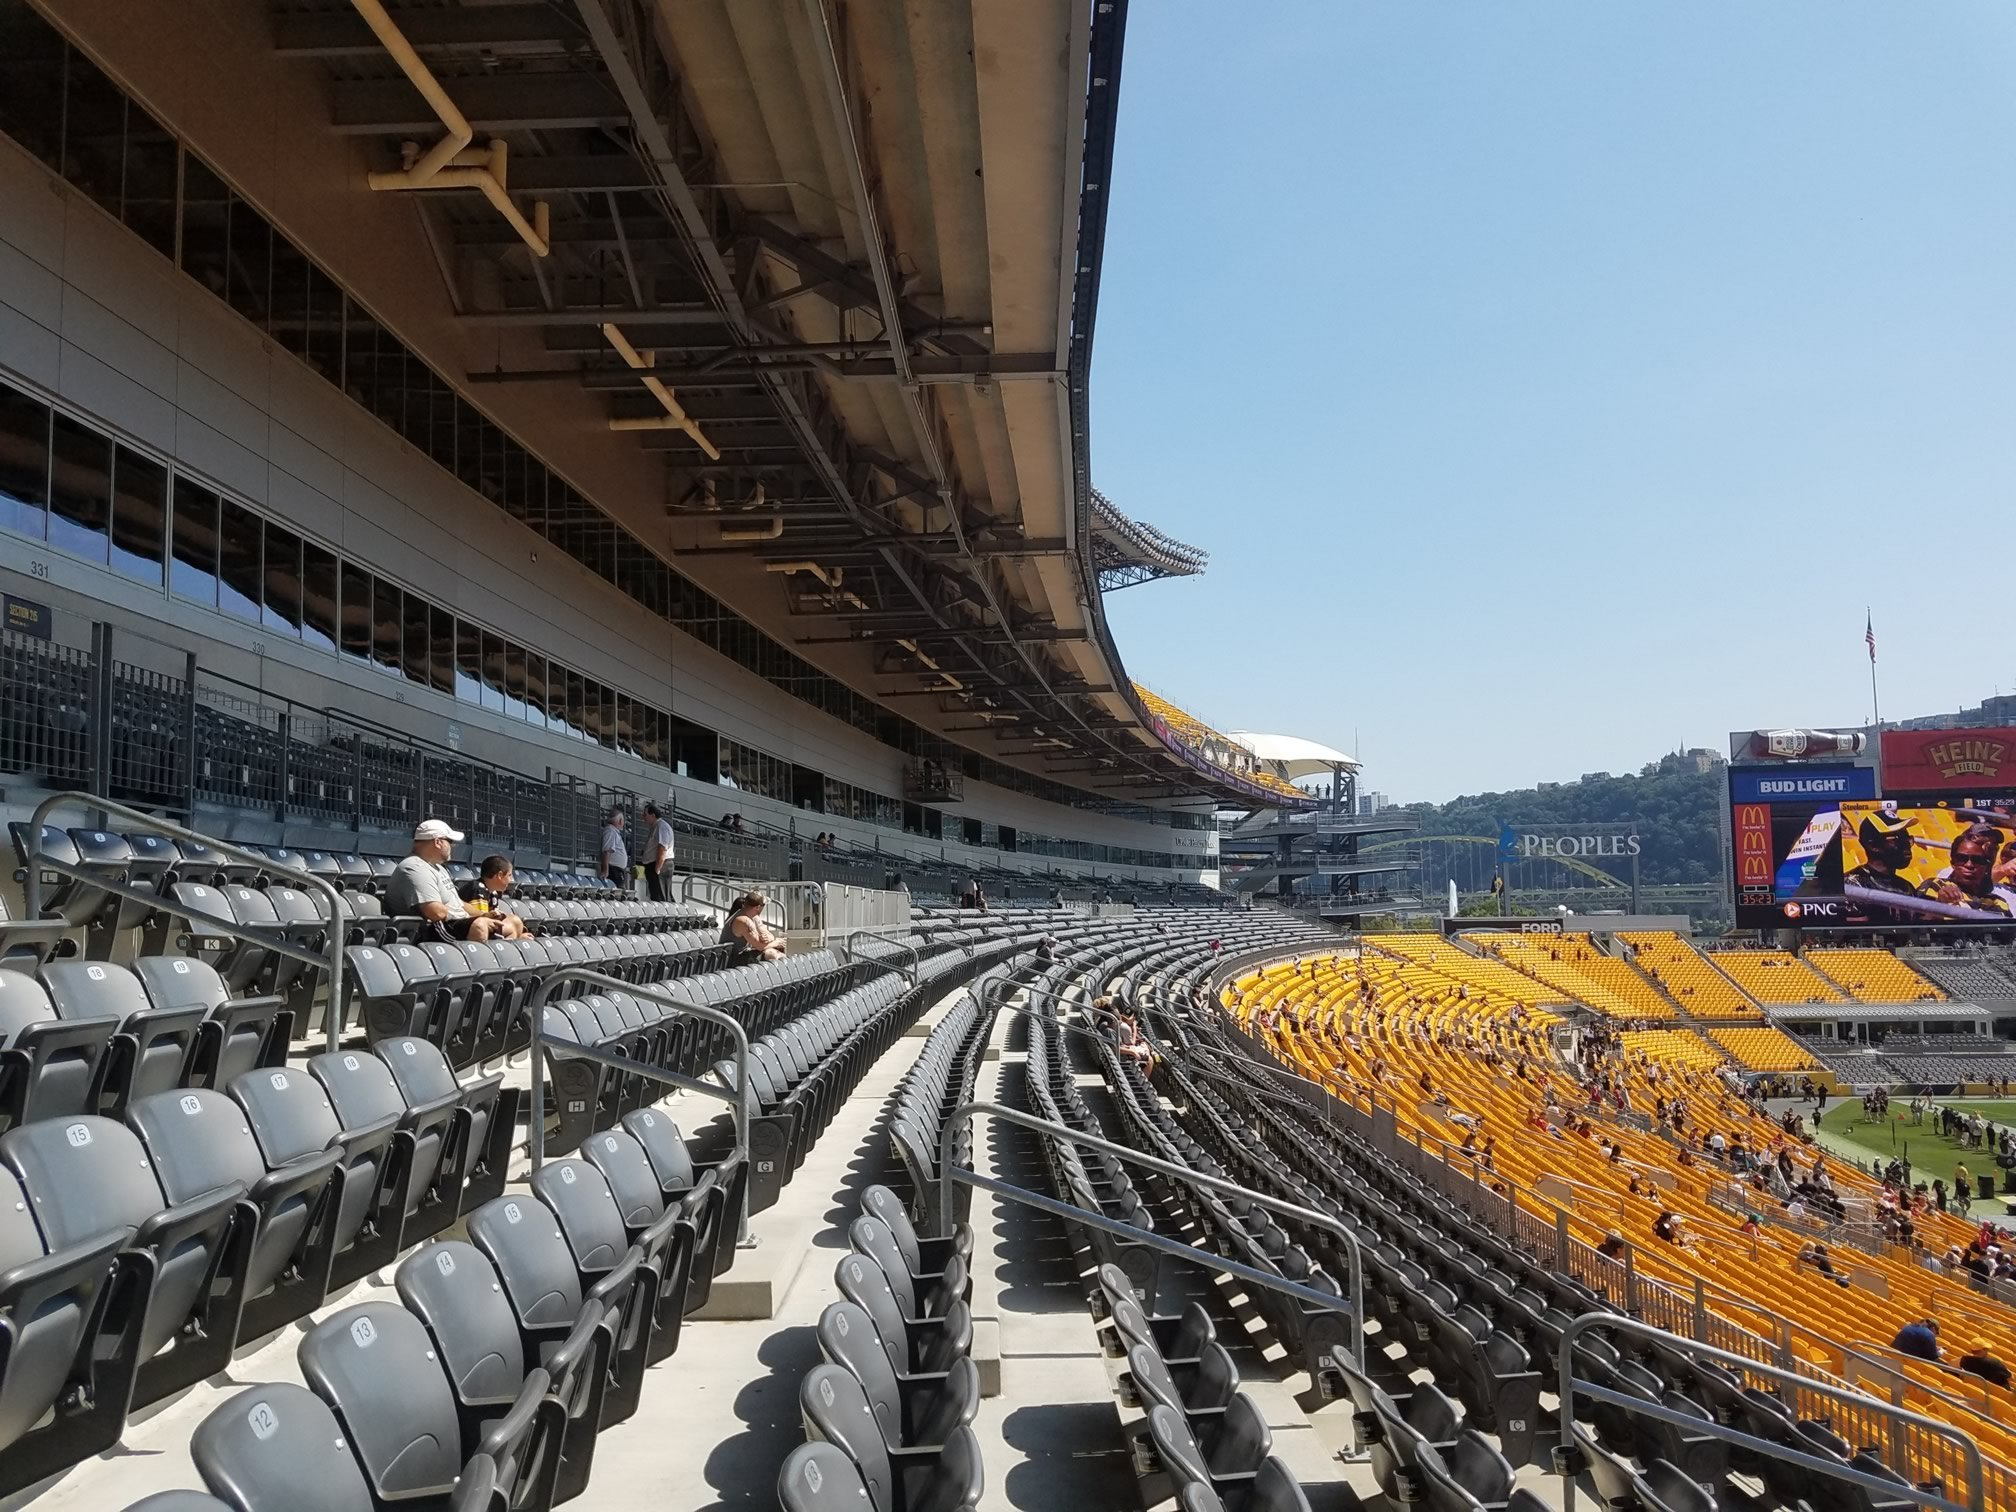 Club Seats On The East Side Of Field Are Covered In Rows F And Above Although They From This Is Sunny Many